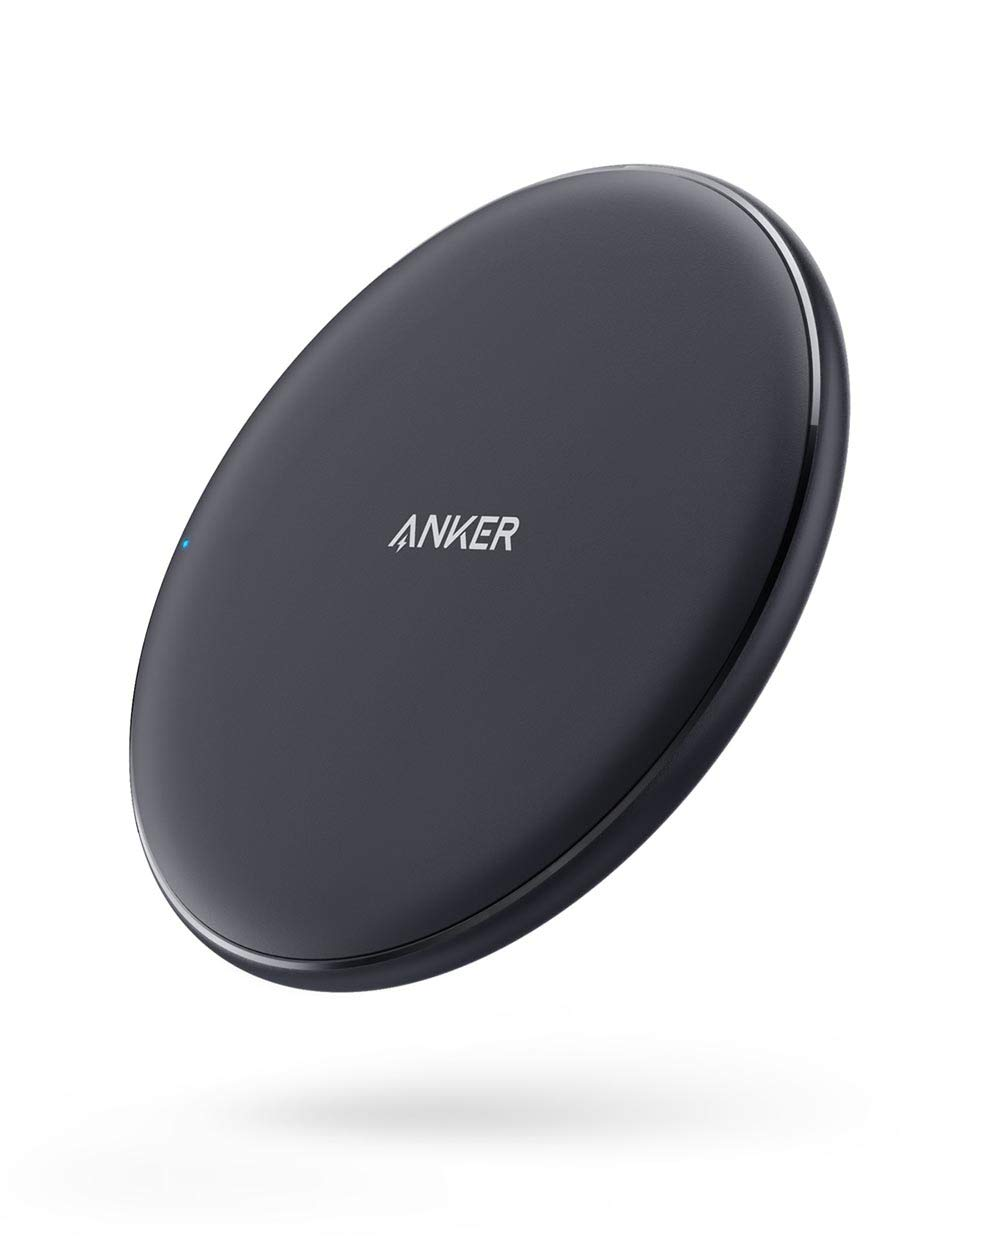 Anker Wireless Charger, PowerWave Pad, Compatible iPhone 11, 11 Pro, 11 Pro Max, Xs Max, XR, XS, X, 8, 8 Plus, 10W Fast-Charging Galaxy S10 S9 S8, ...